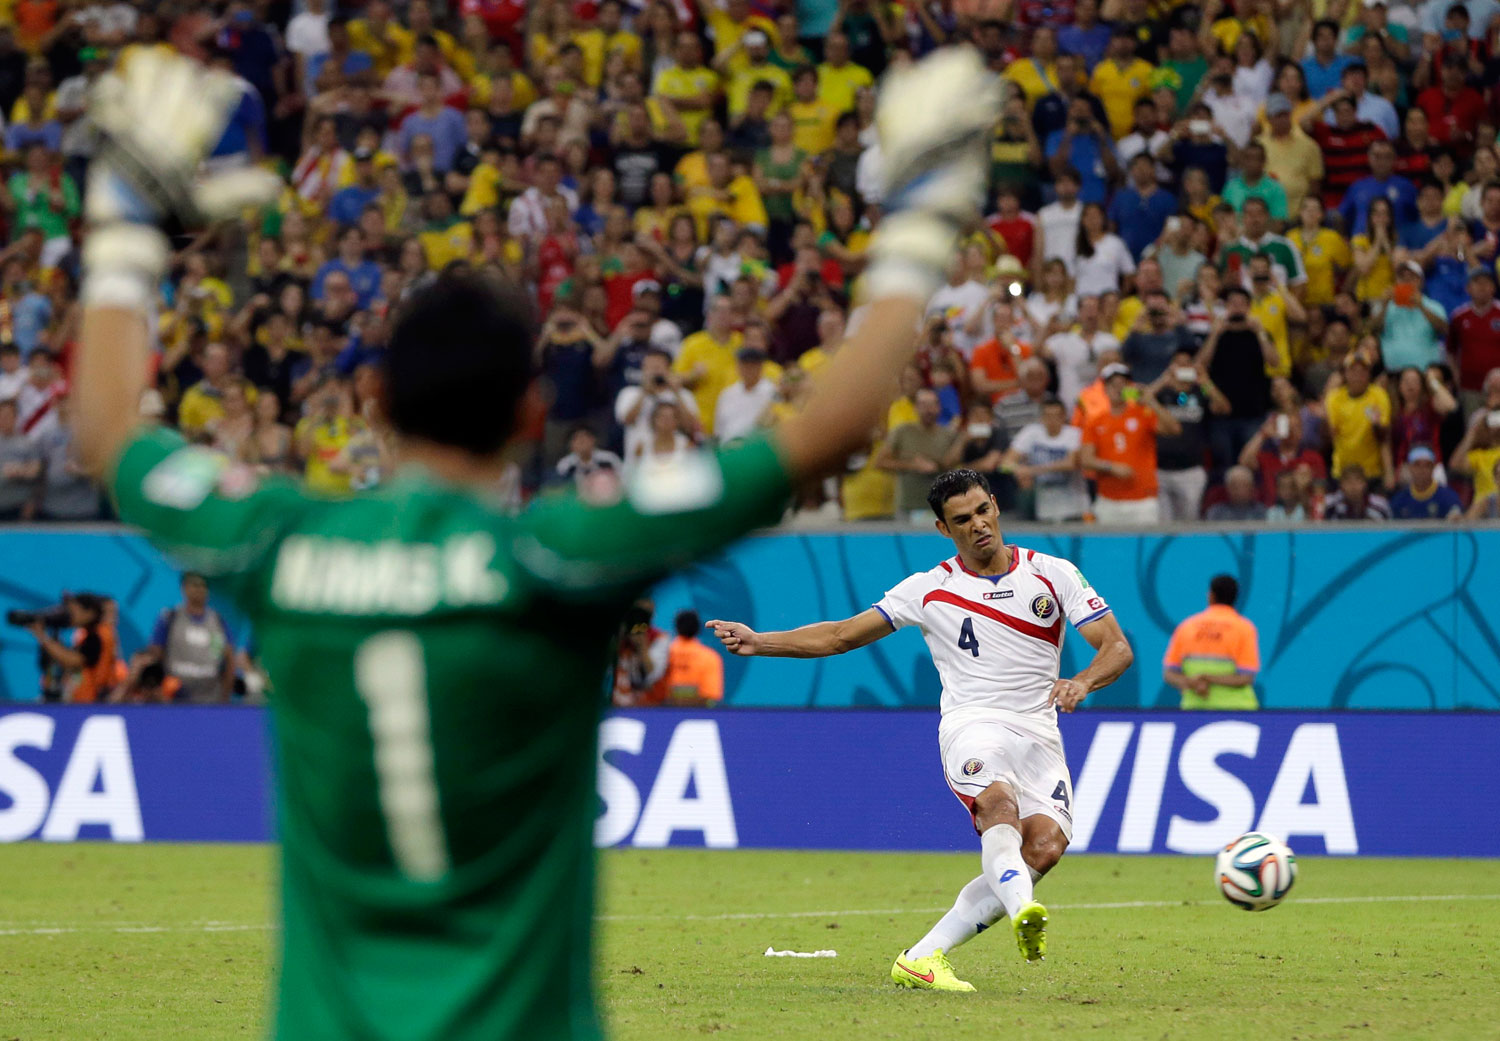 Costa Rica vs. Greece 1-1 (5-4 shootout)                                                              Costa Rica's goalkeeper Keylor Navas reacts as Michael Umana takes the winning kick in a penalty shootout at the Arena Pernambuco in Recife, Brazil on June 29, 2014.